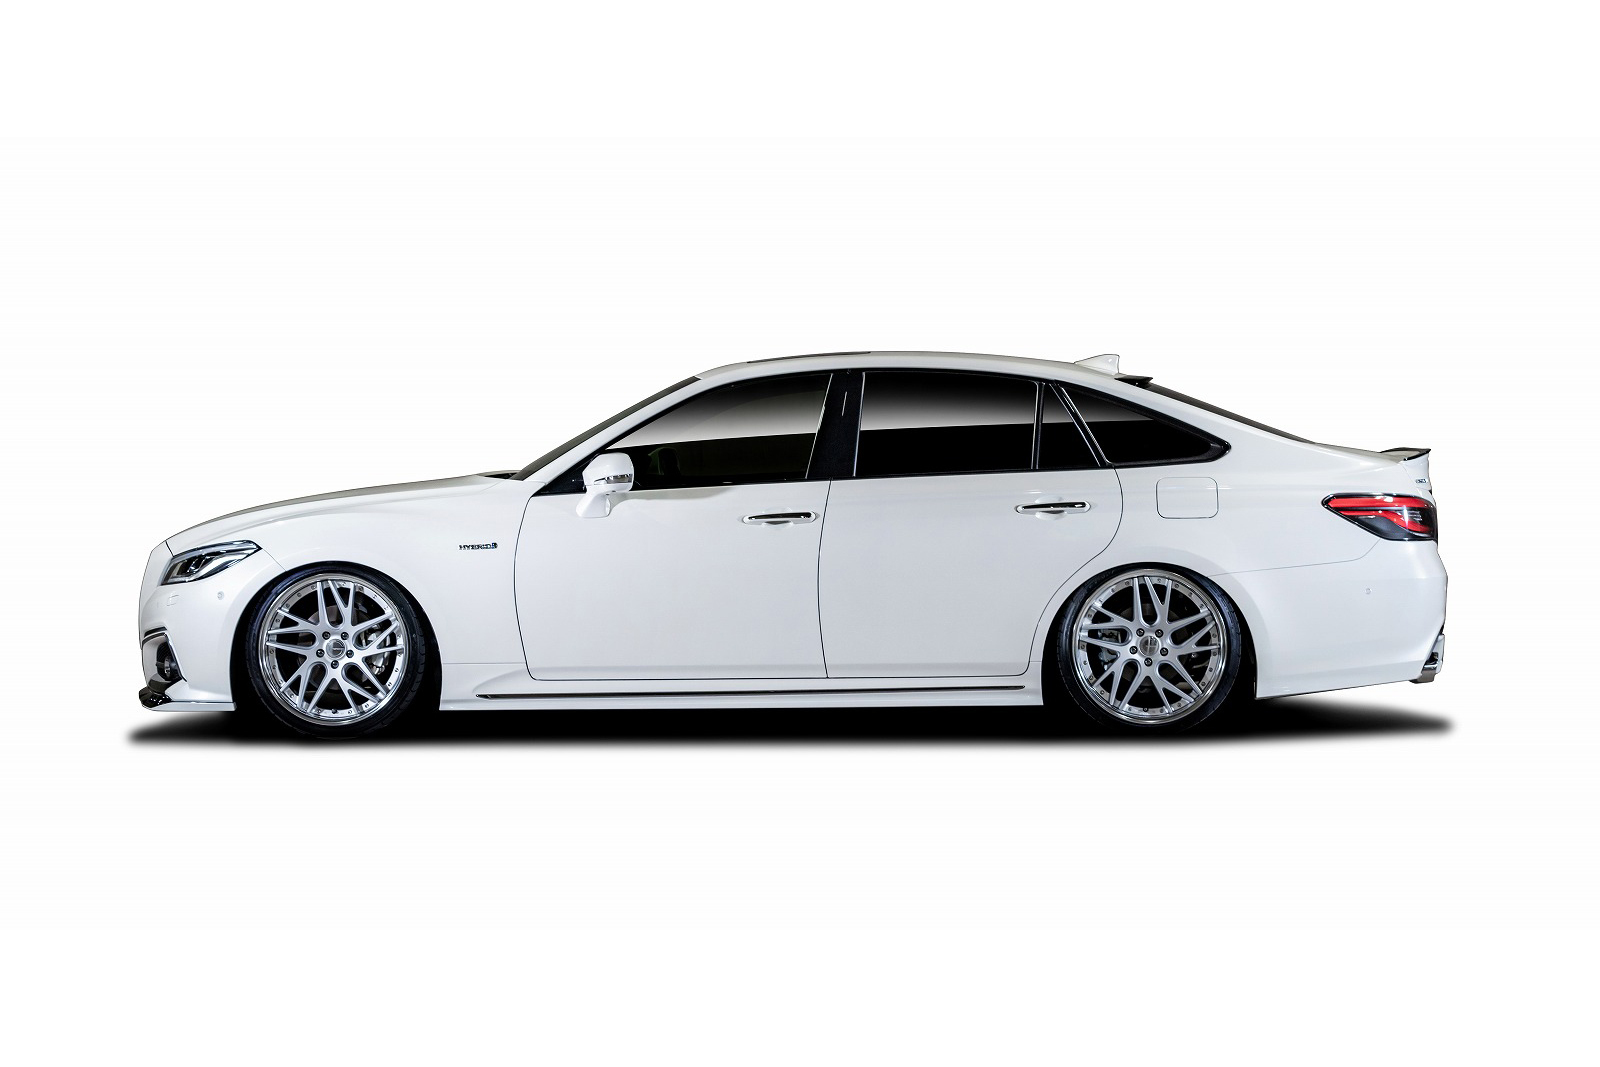 Rowen body kit for Toyota 220 CROWN RS new style